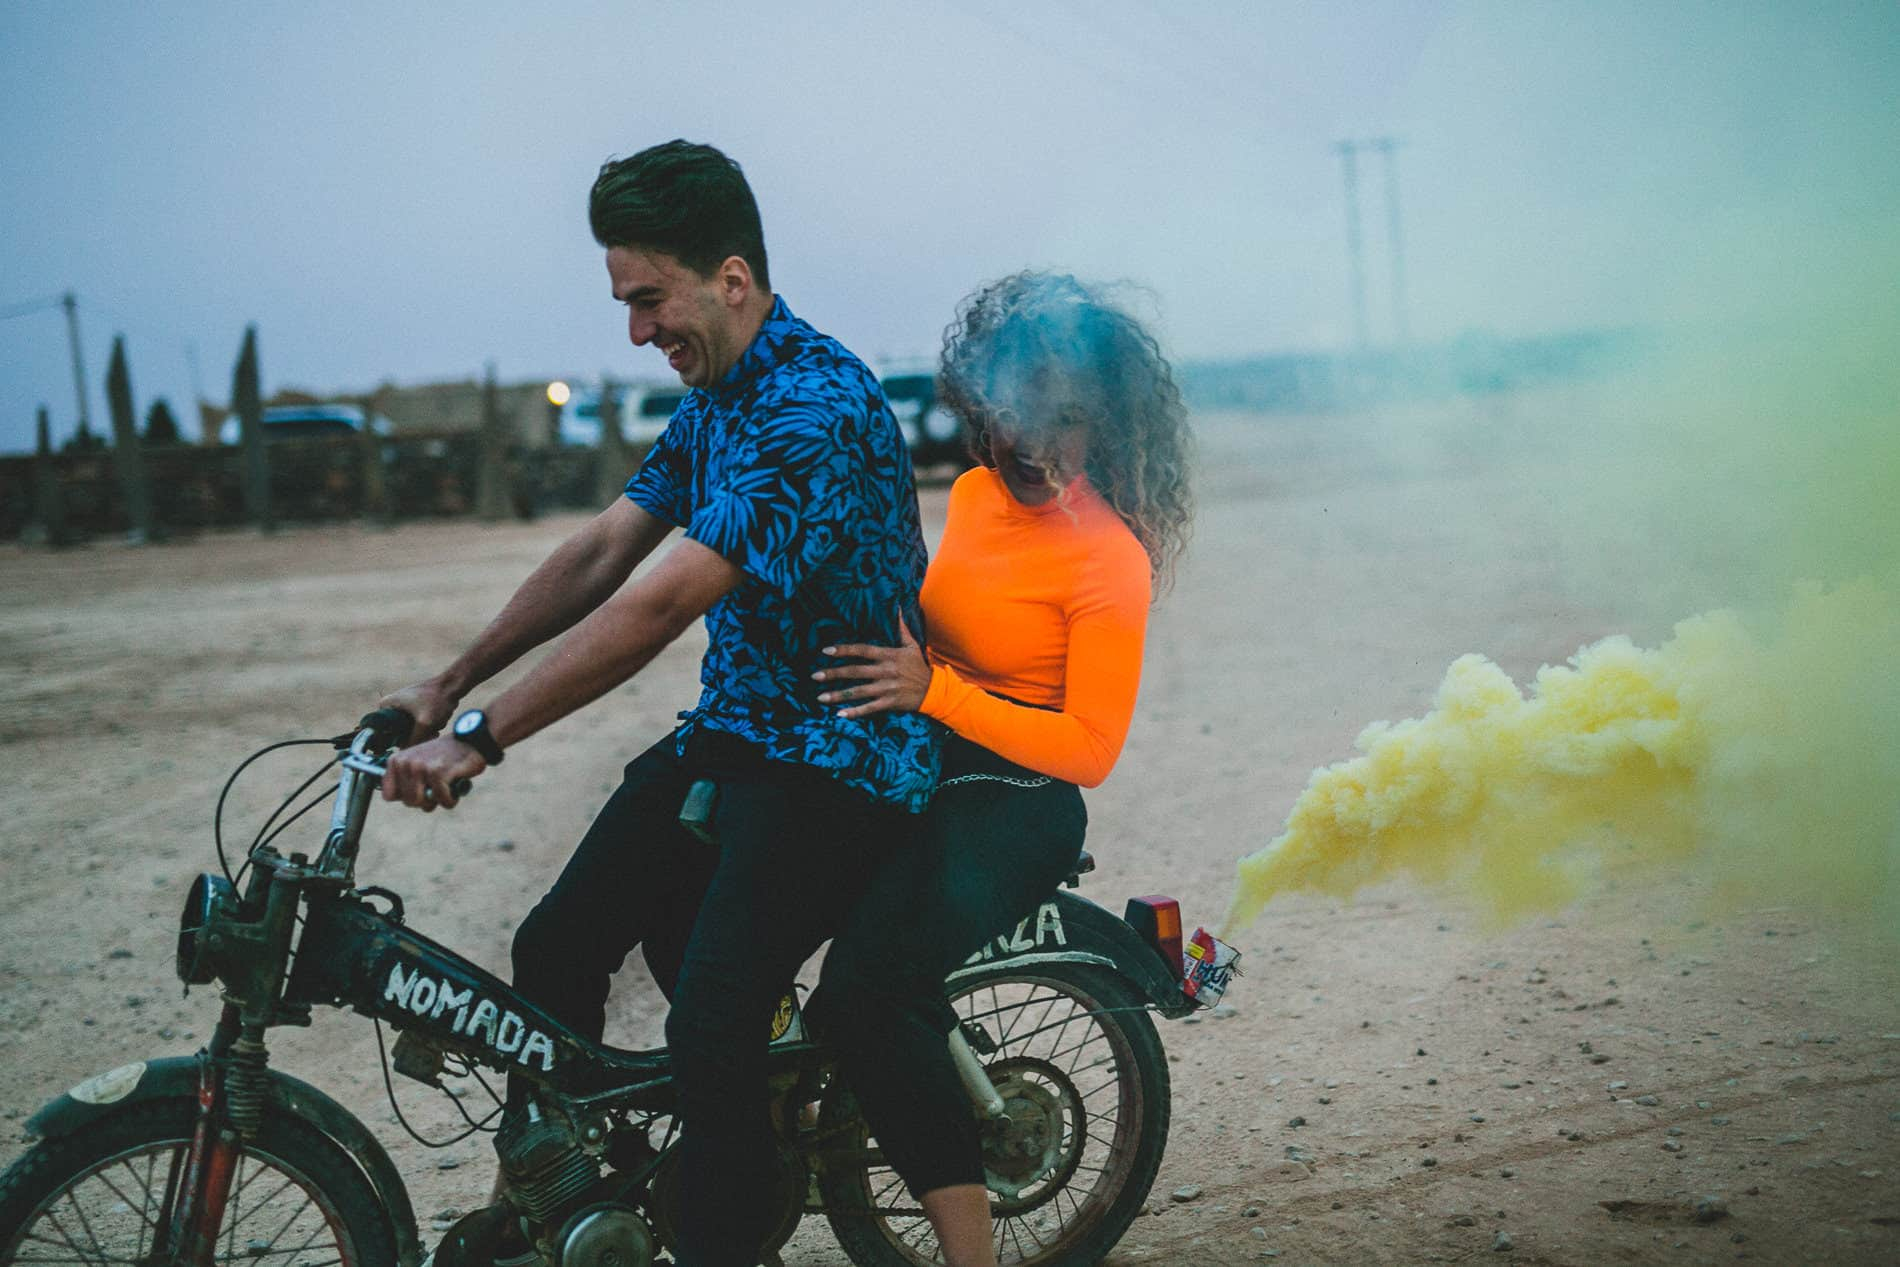 couple driving a motorcycle in the desert